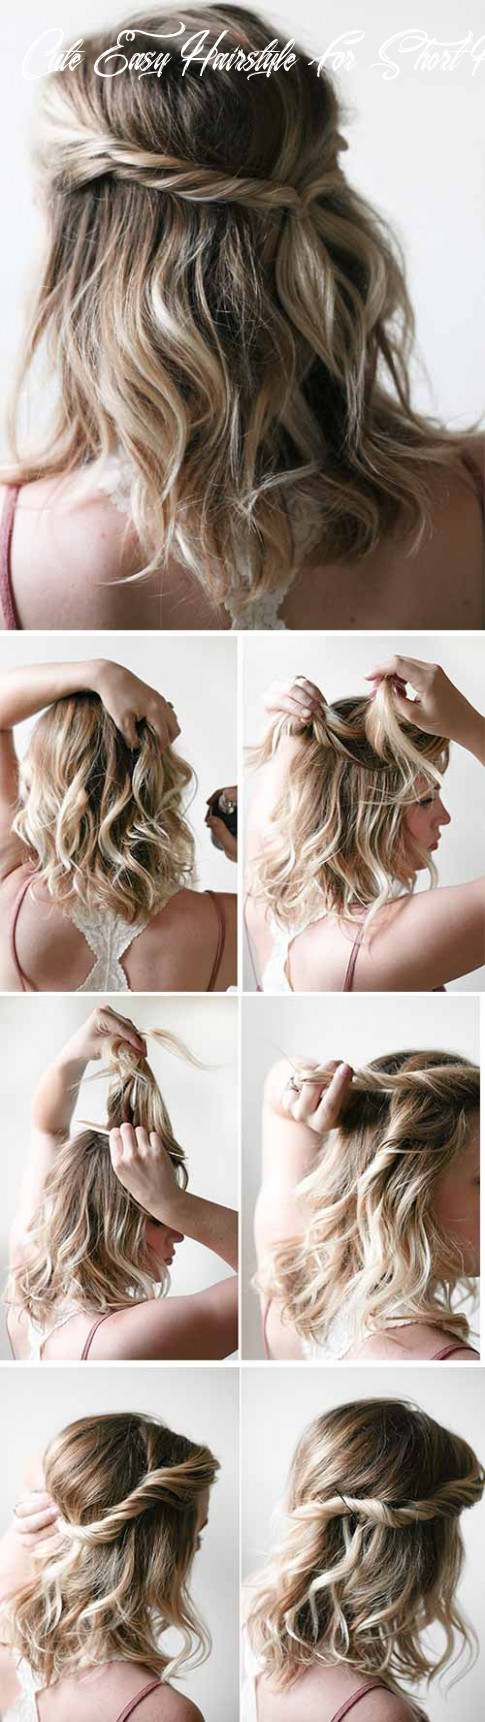 9 incredible diy short hairstyles a step by step guide cute easy hairstyle for short hair